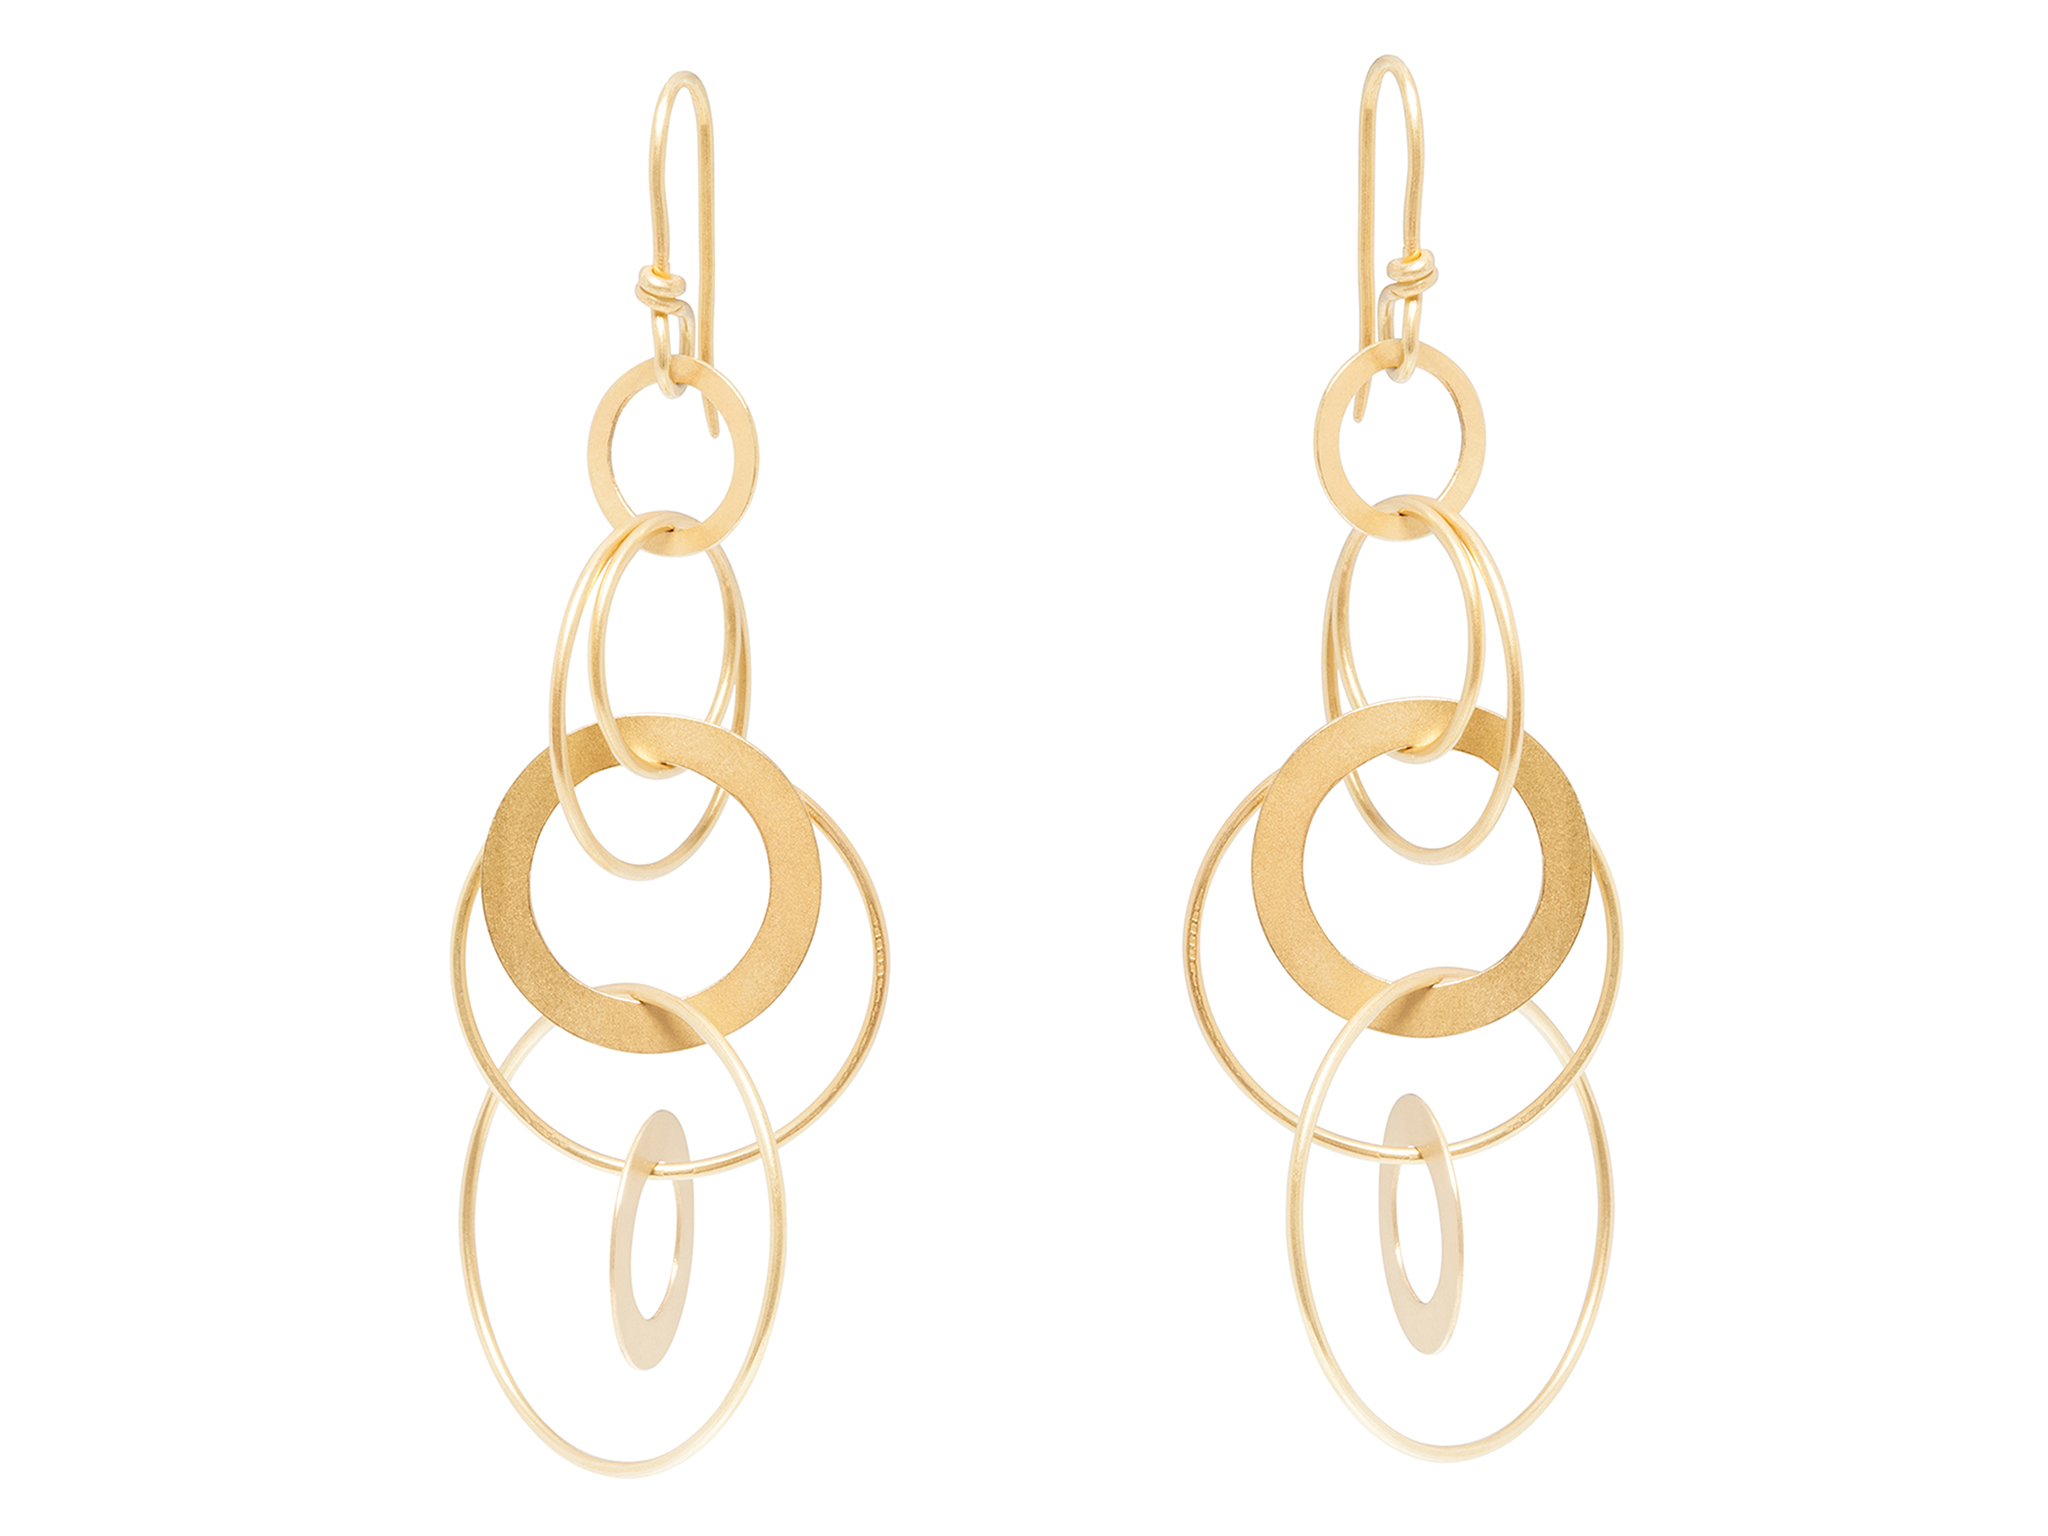 e mattegold thin metal earrings gold matte hoop